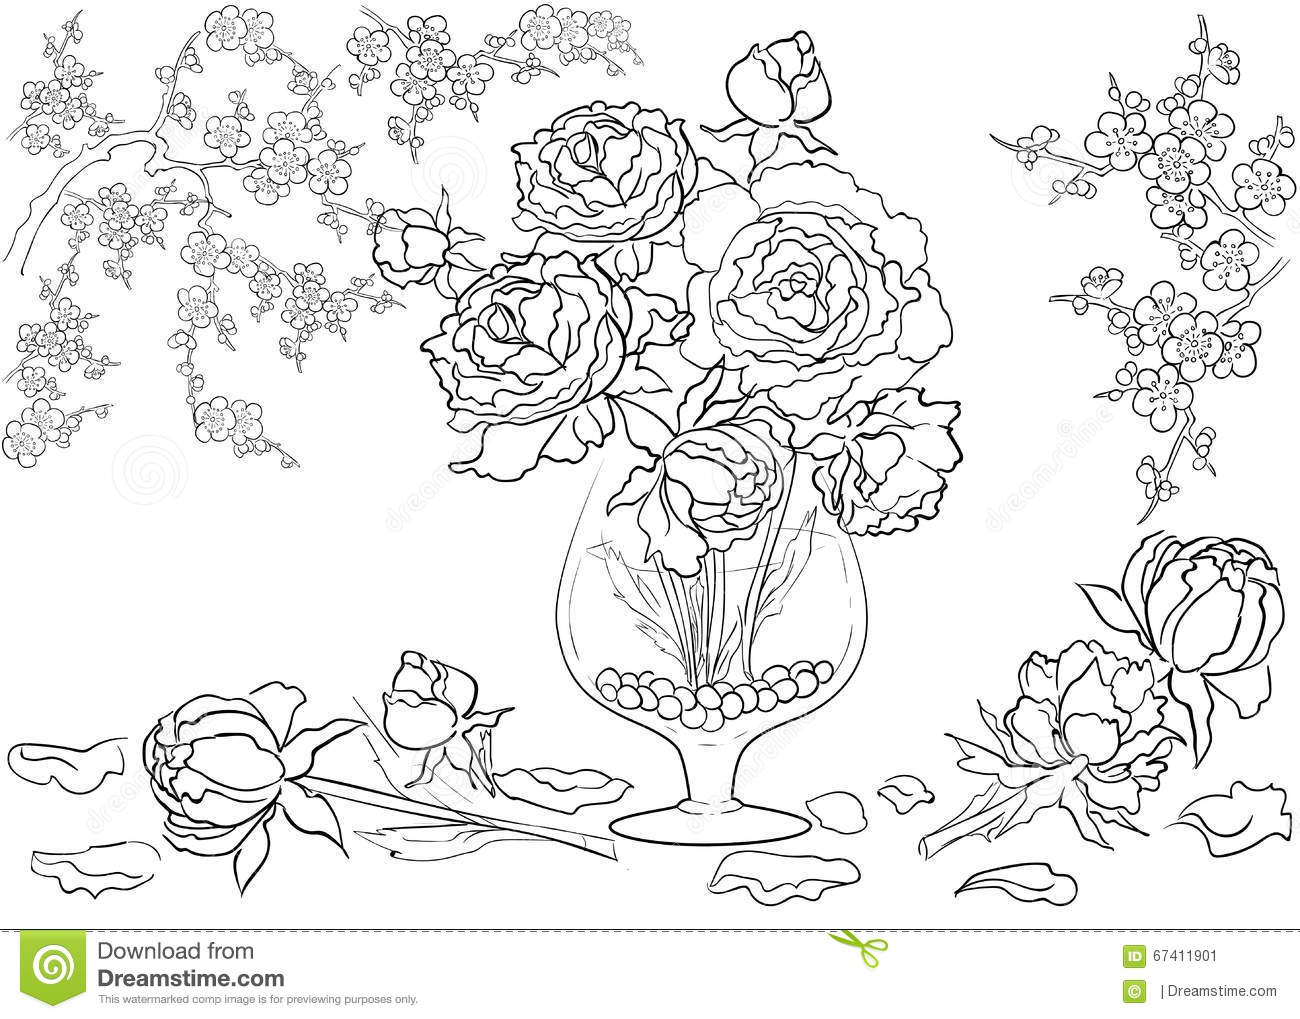 Very Detailed Coloring Pages On Images Free Download For: Hand Drawn Ink Pattern. Coloring Book Coloring For Adult